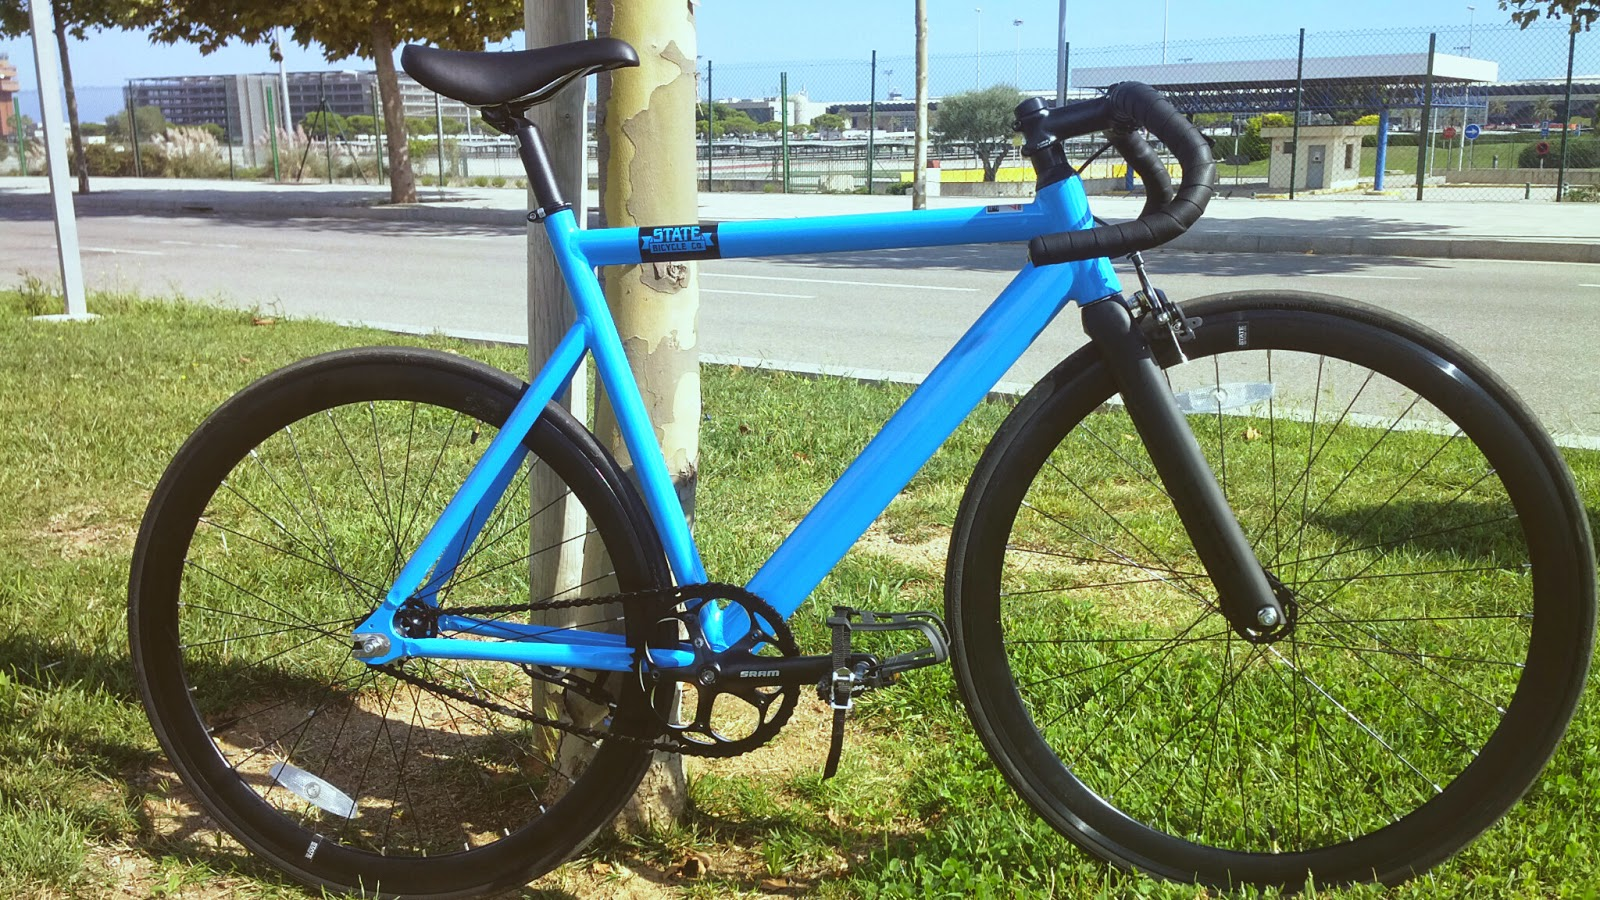 #PRODUCTREVIEW: State Bicycle Co. Black Label 6061 video review